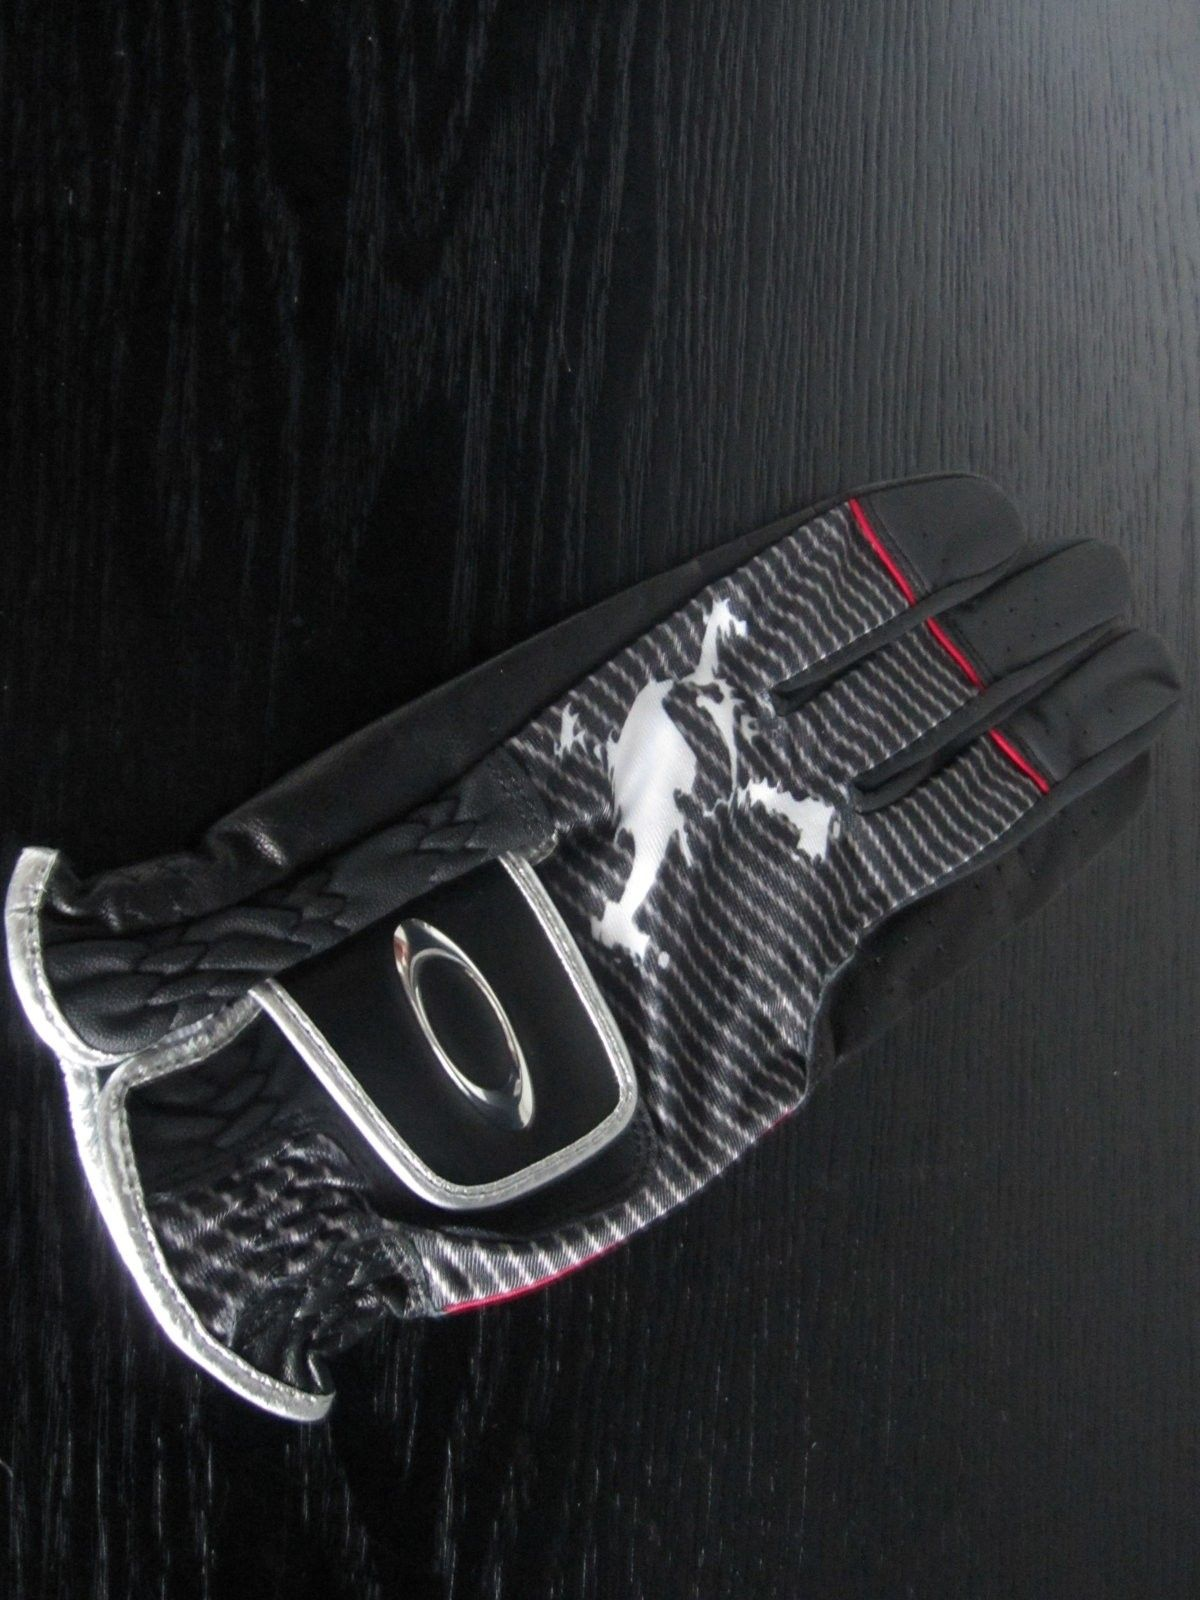 BNIB Oakley Japan Skull Golf Gloves - Size S - IMG_4574.JPG